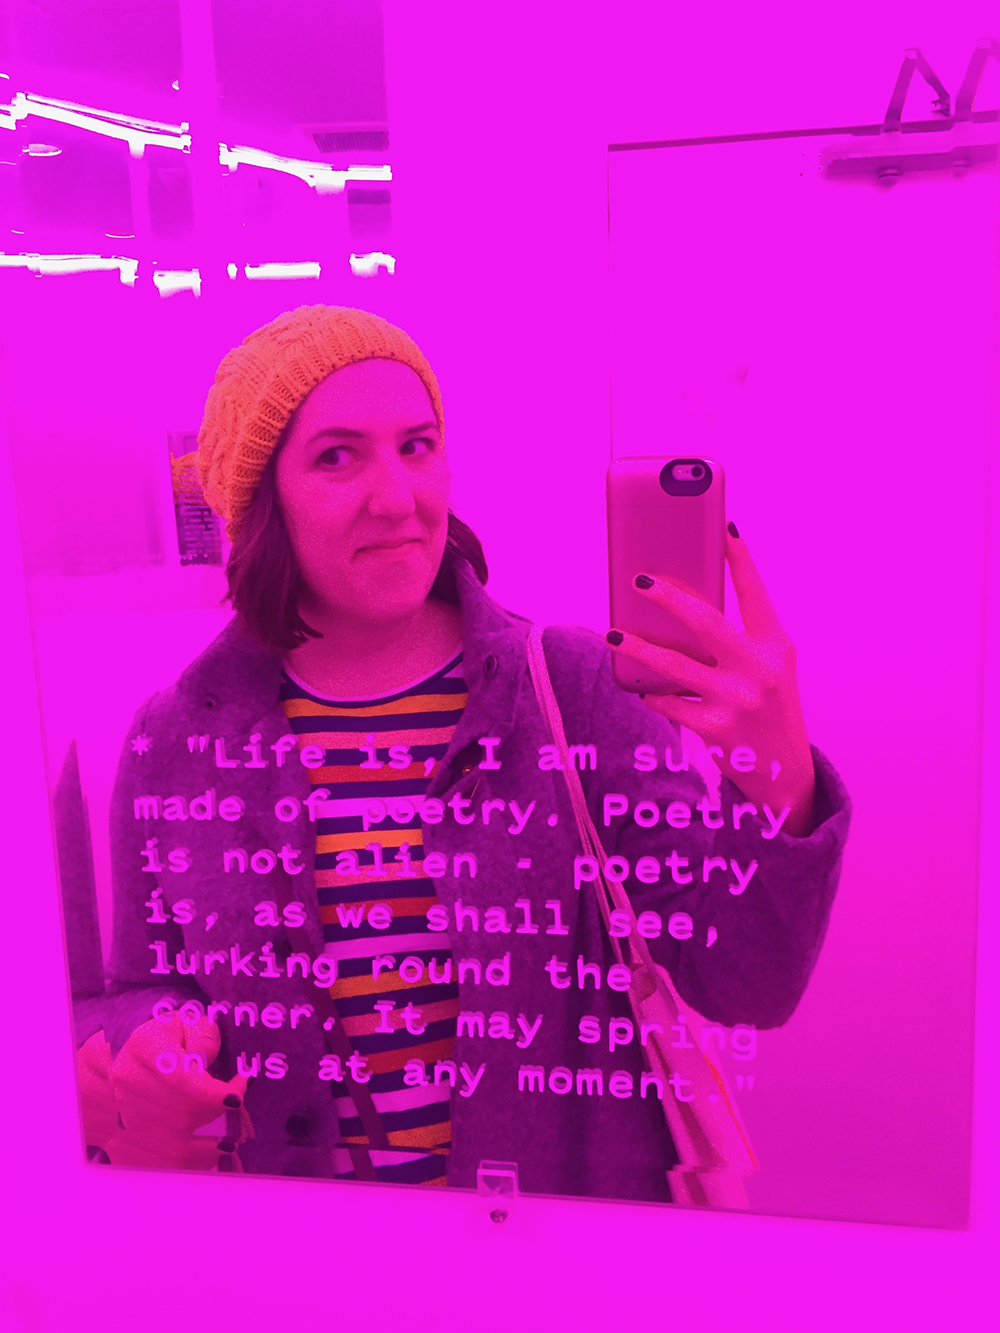 Women taking a photo in a mirror in a pink neon bathroom with quotes by Jorge Louis Borges on the mirrors